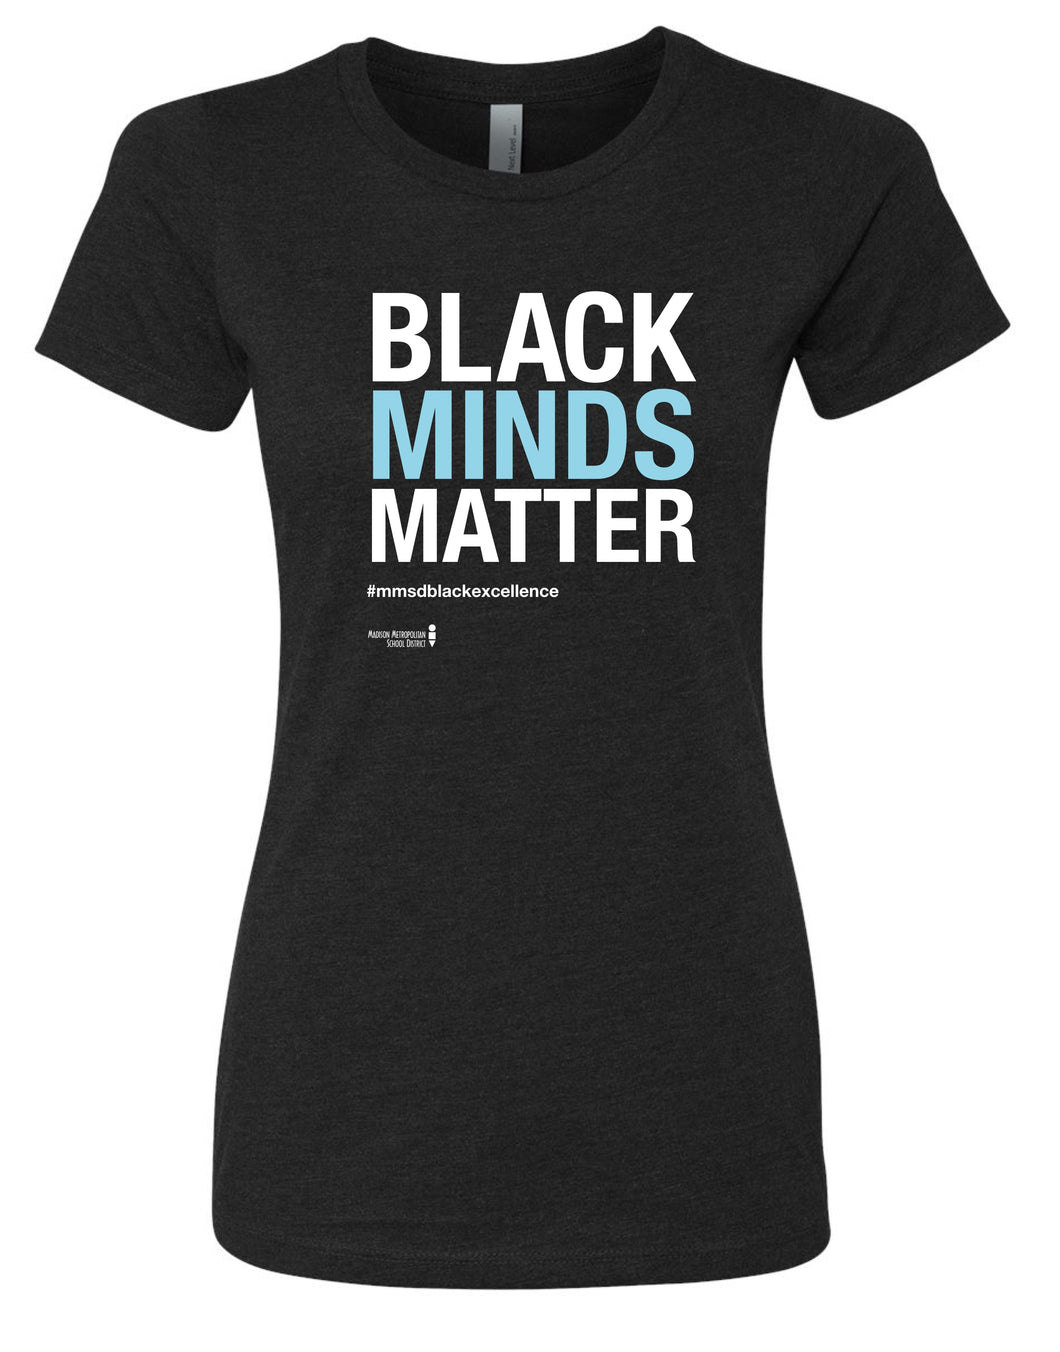 Black Minds Matter, Ladies' Black Fitted Crew Tee